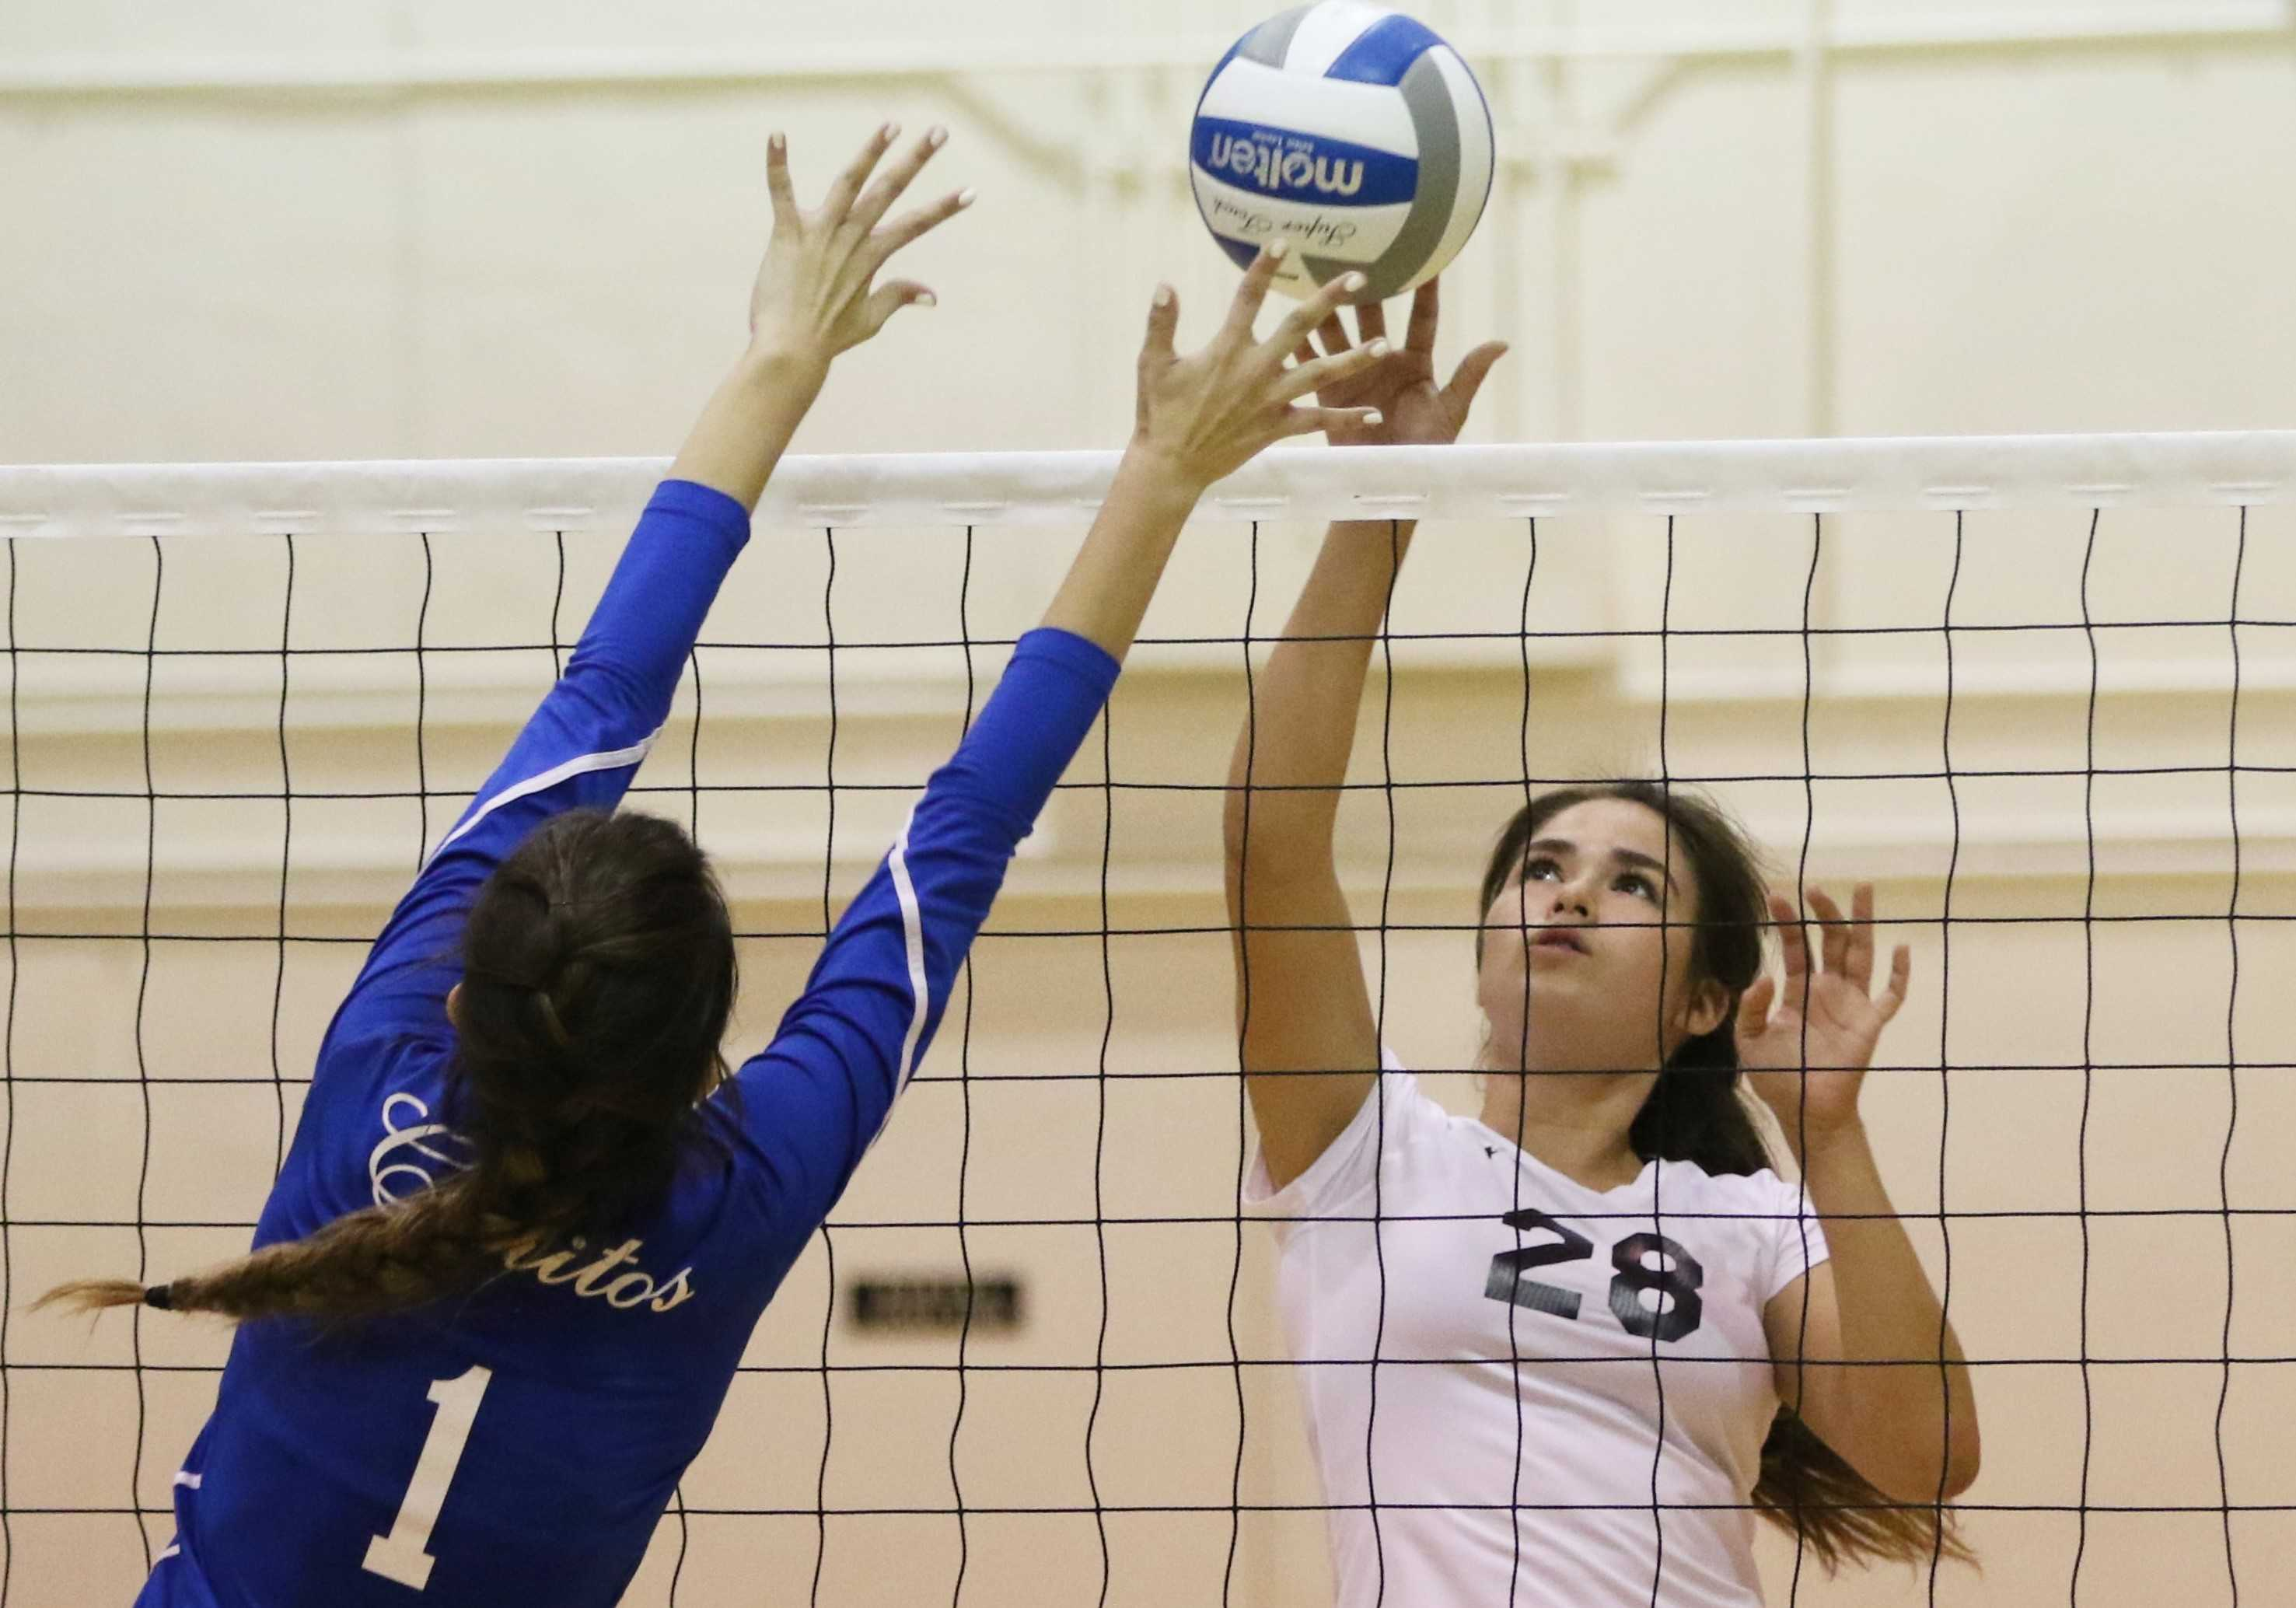 Women's volleyball will host first round of playoffs after sweep over Cerritos